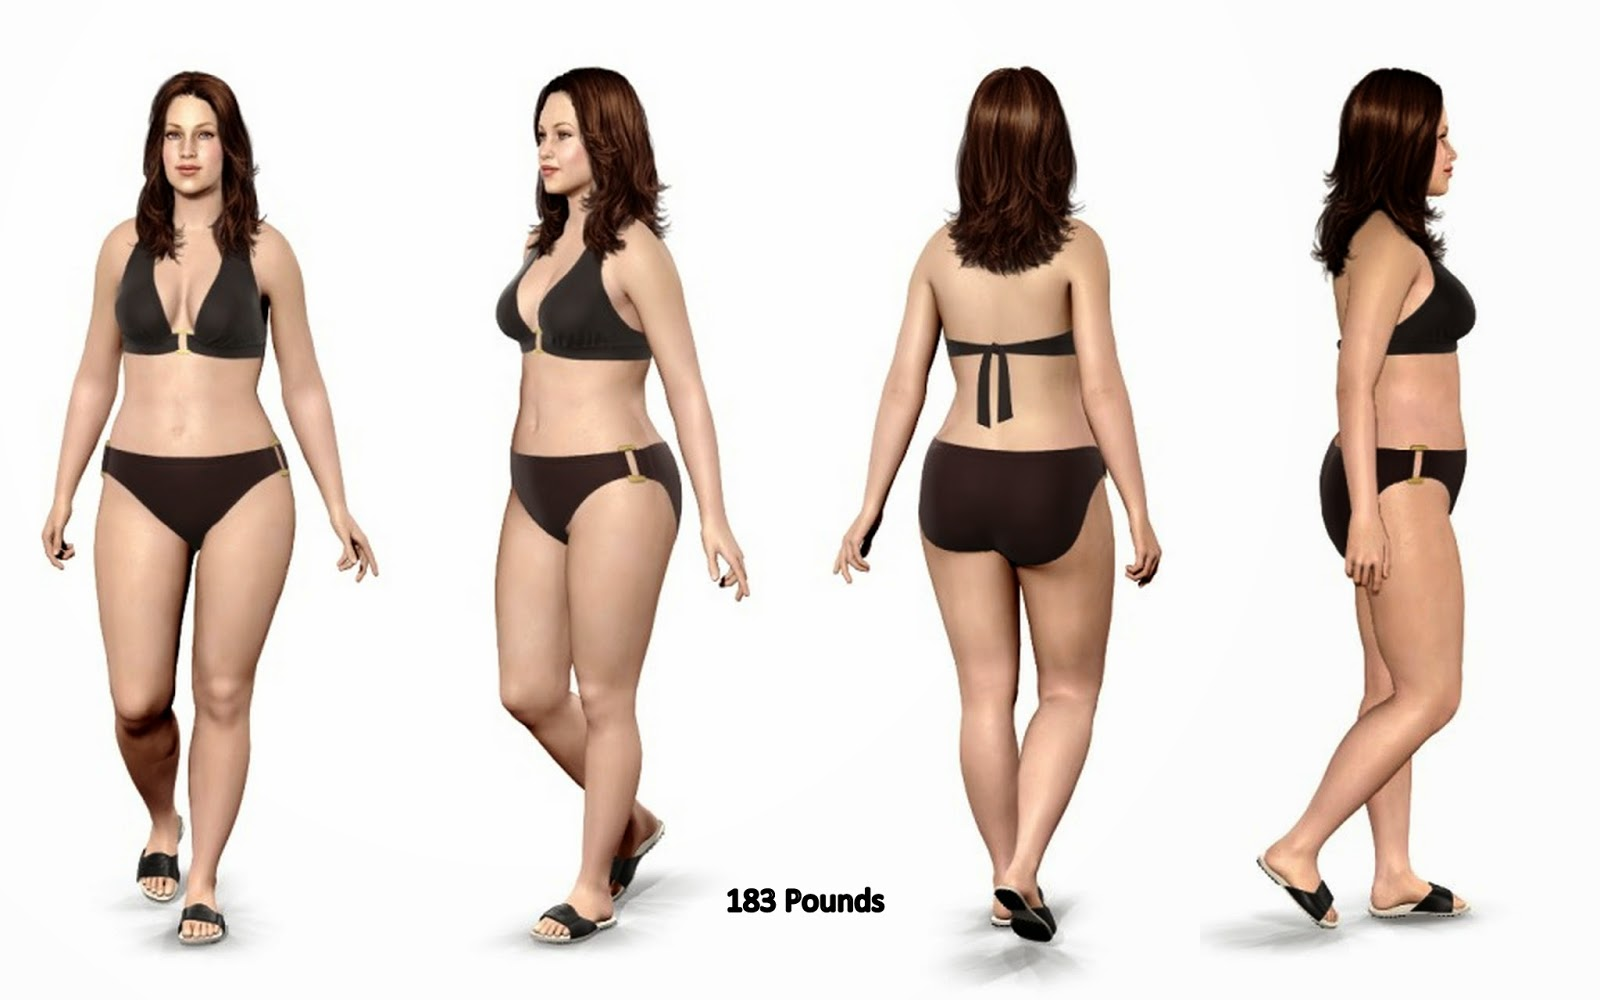 Model My Diet Virtual Weight Loss Simulator and Motivation Tool Free weight loss photo simulator